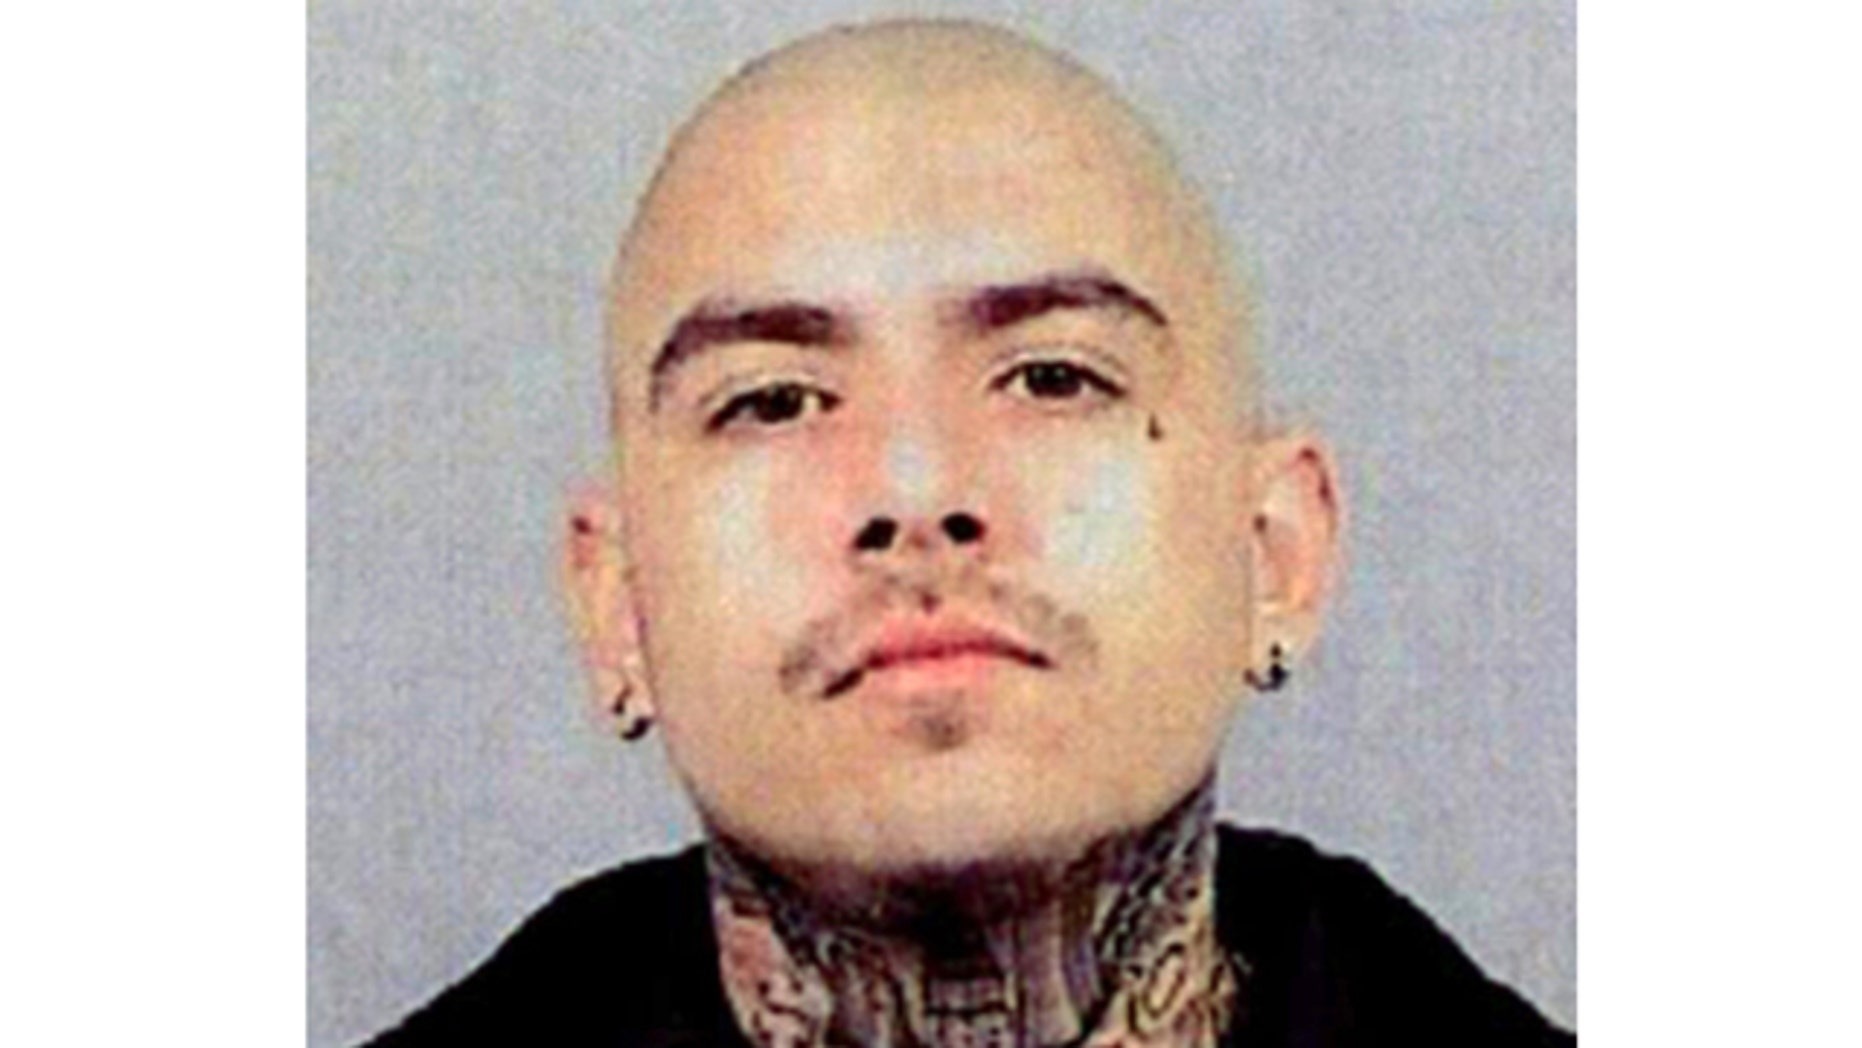 Giovanni Ramirez is shown in this undated photograph obtained by The Associated Press. Ramirez has been arrested on suspicion of assault with a deadly weapon in the attack on Giants fan Bryan Stow outside Dodger Stadium after the Dodger home opener.